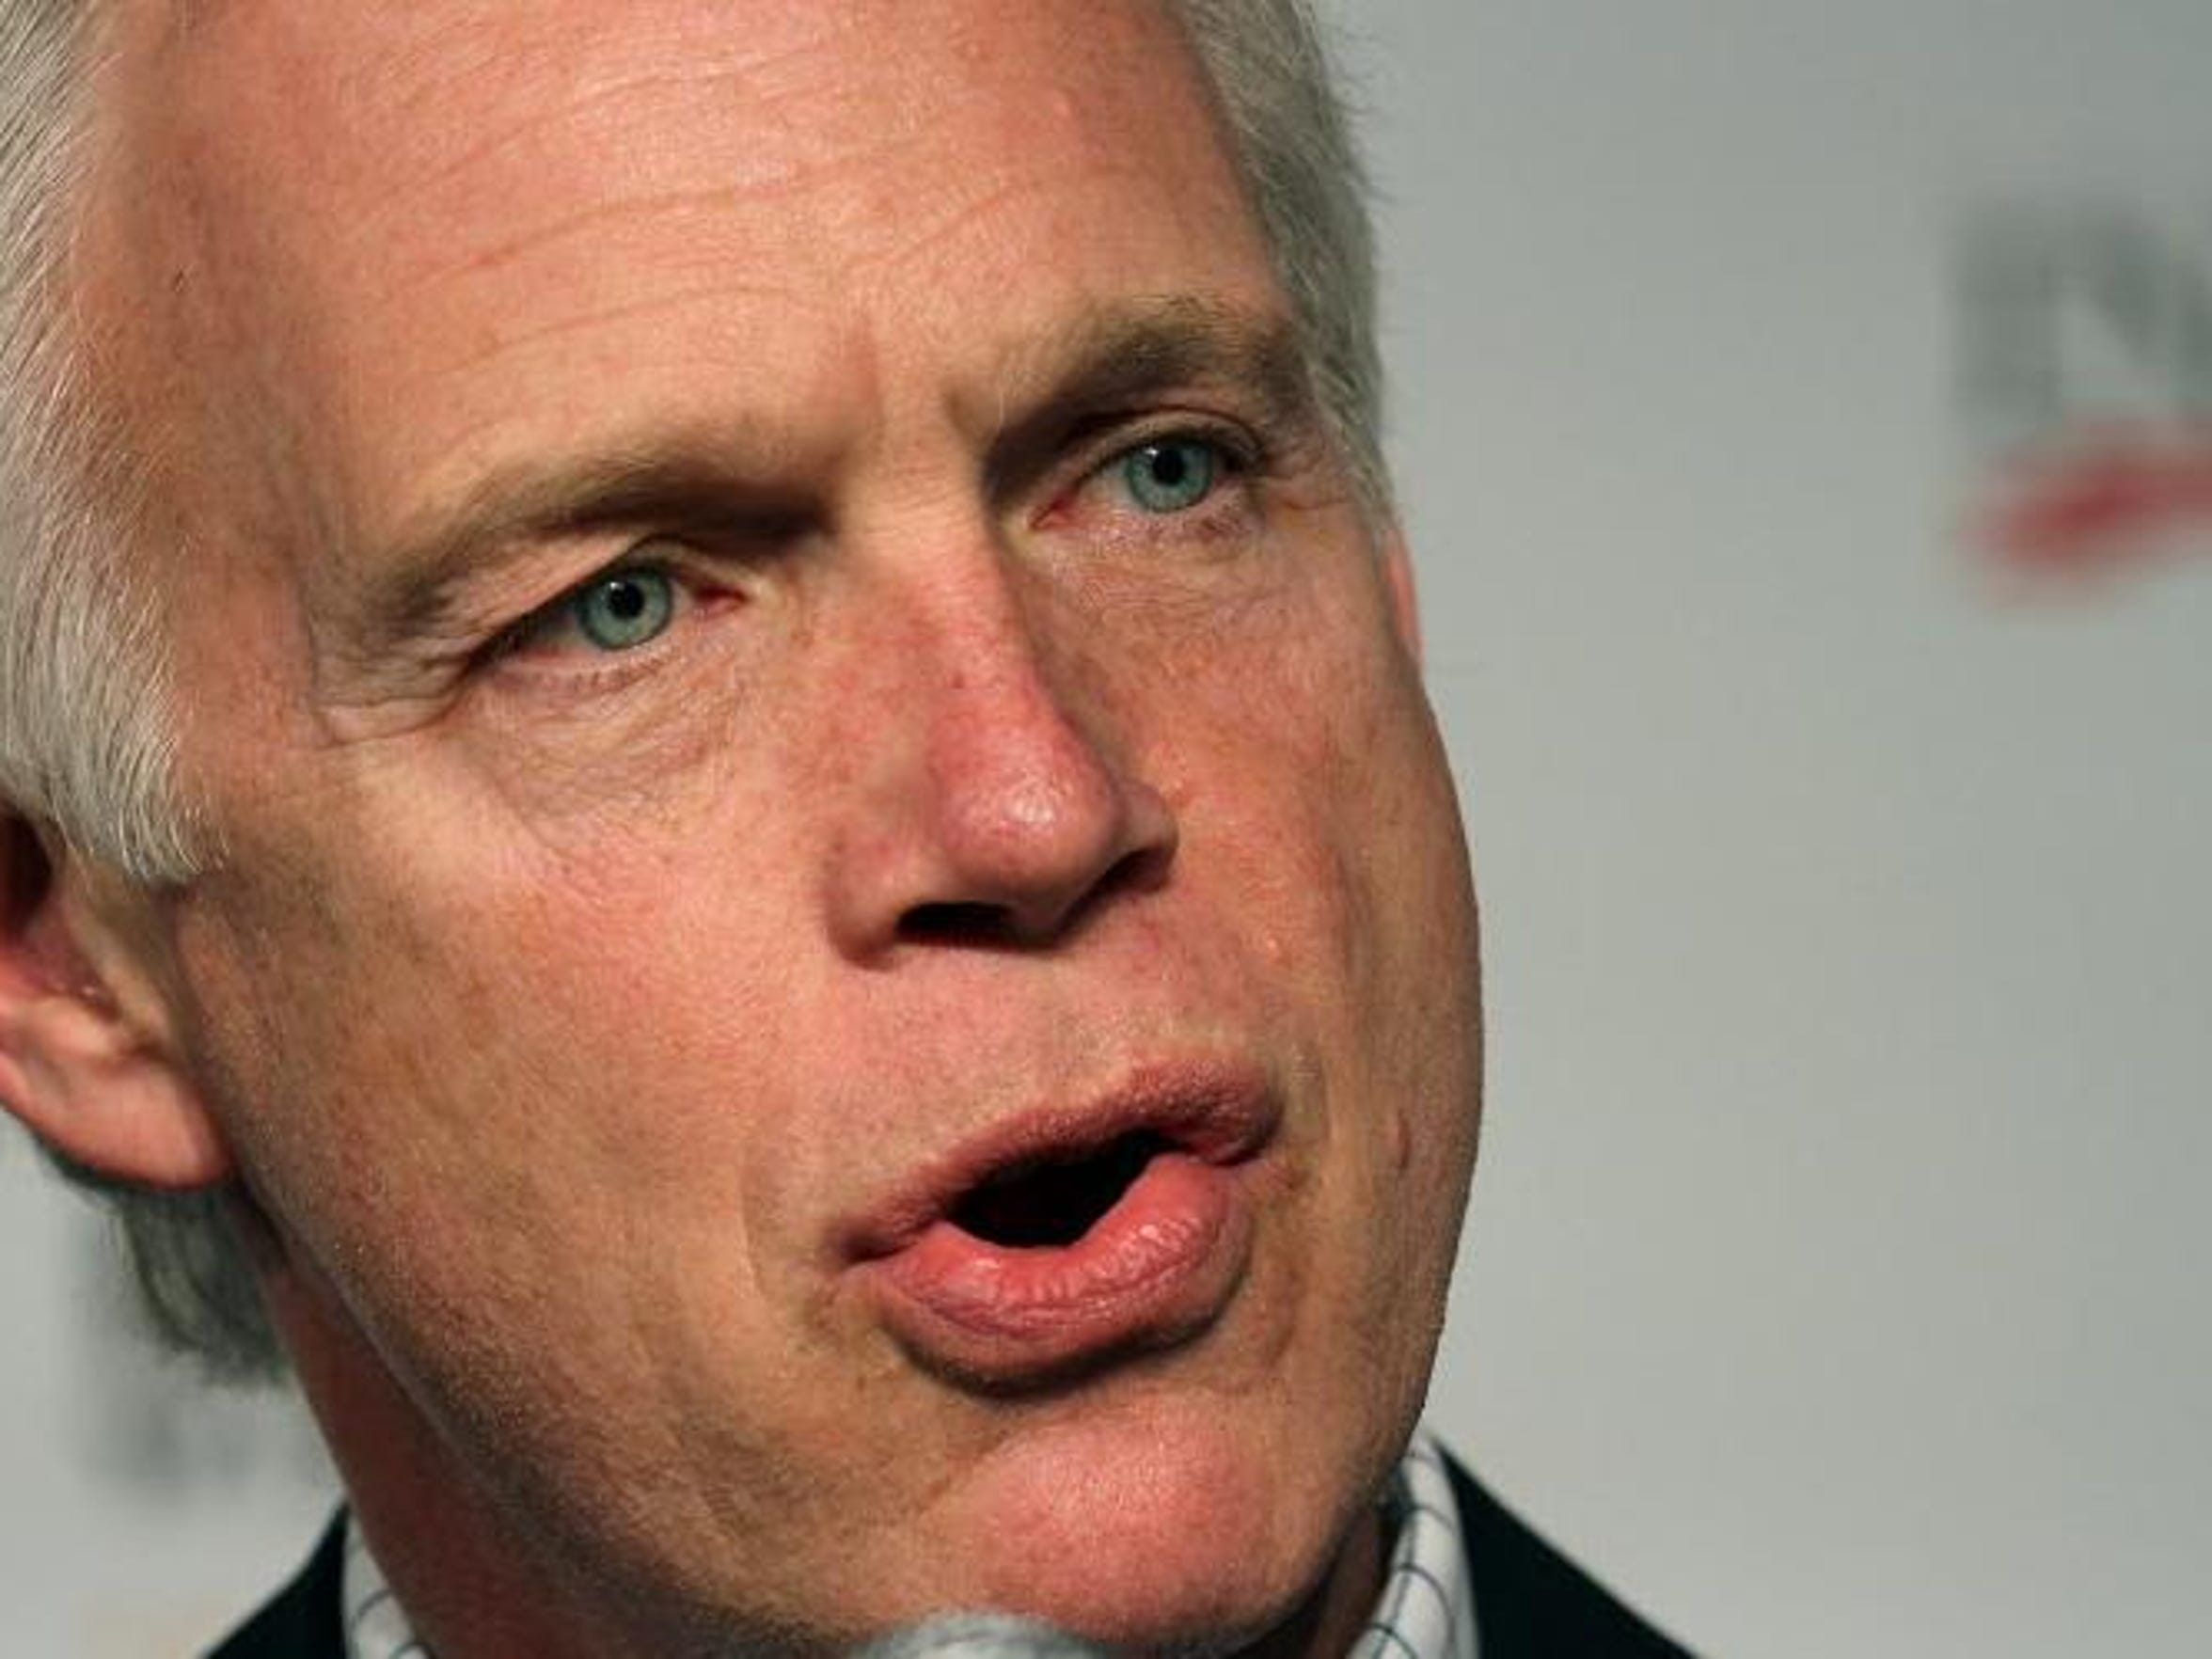 """""""The election interference ... is not the greatest threat to our democracy. We've blown it way out of proportion,"""" Sen. Ron Johnson told the Washington Examiner."""